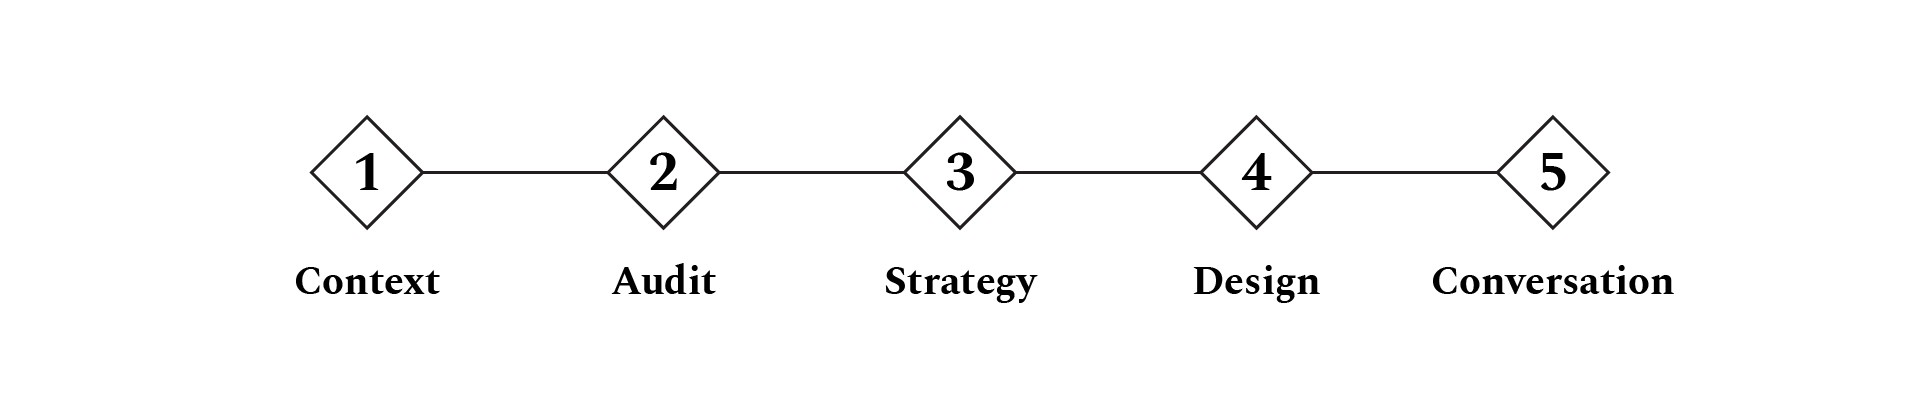 5 steps diagram. 1 is Context. 2 is Audit. 3 is Strategy. 4 is Design. 5 is Conversation.